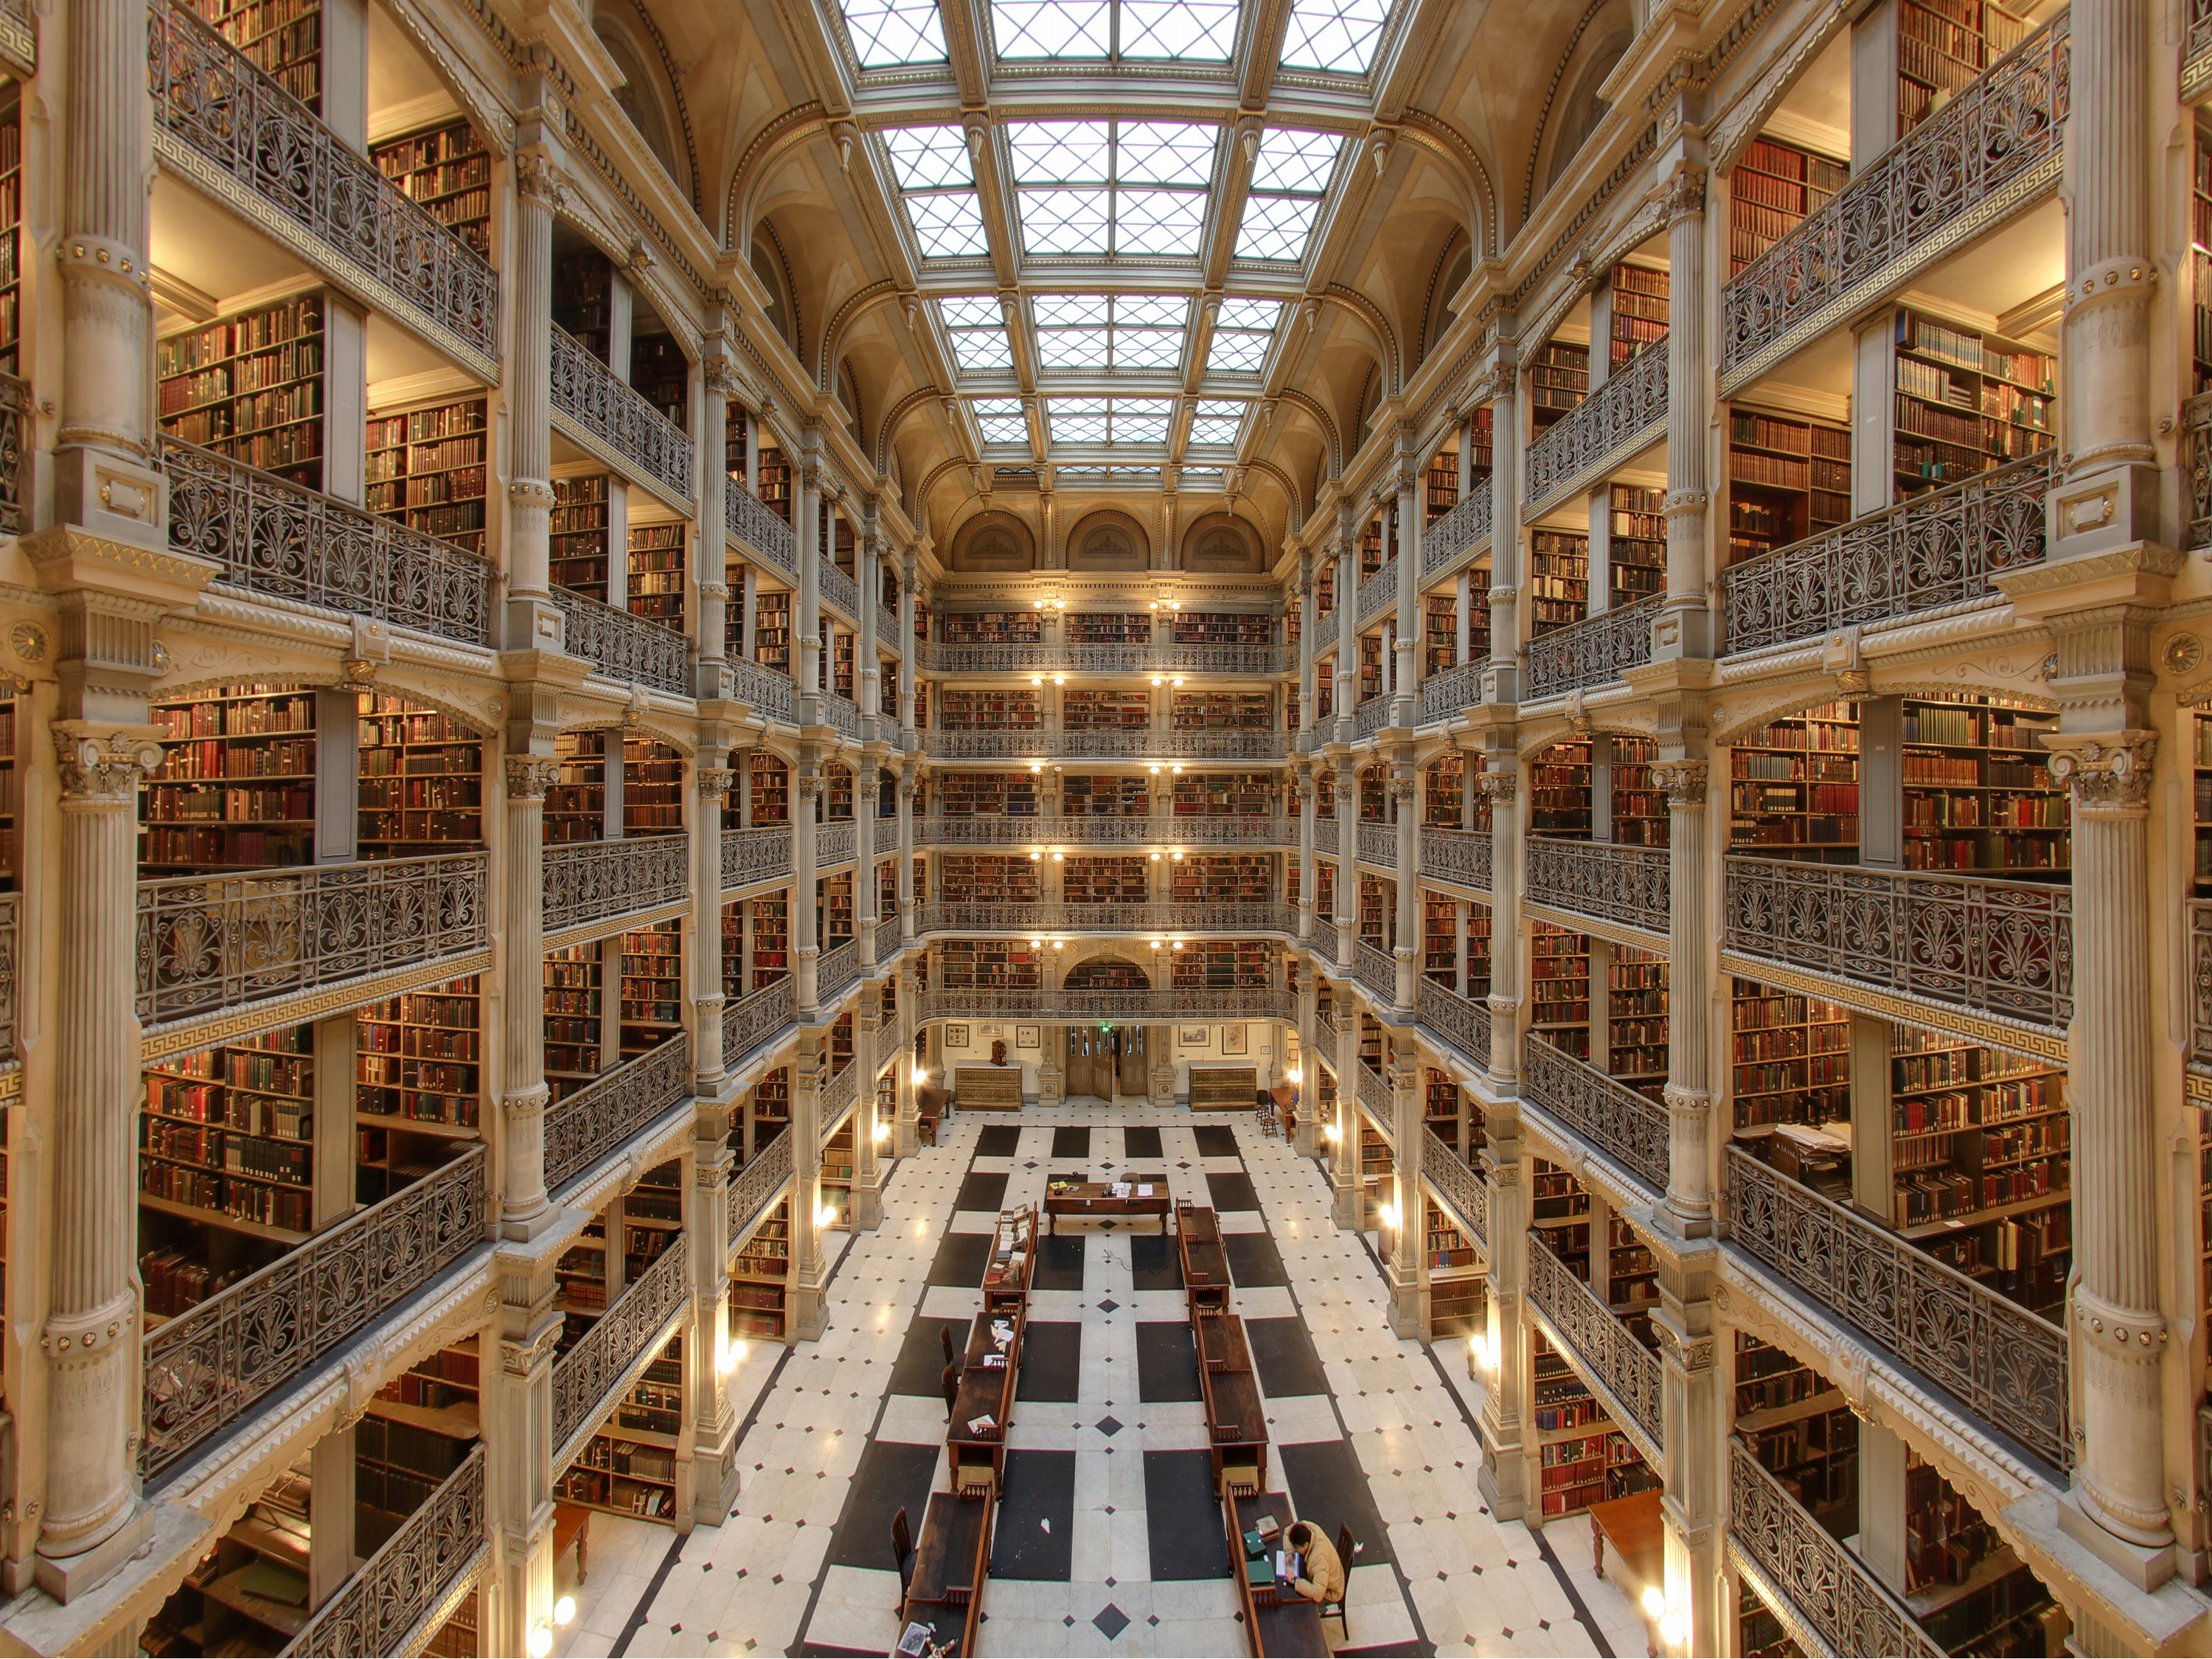 johns_hopkins_university_george_peabody_library_in_baltimore_91.jpg